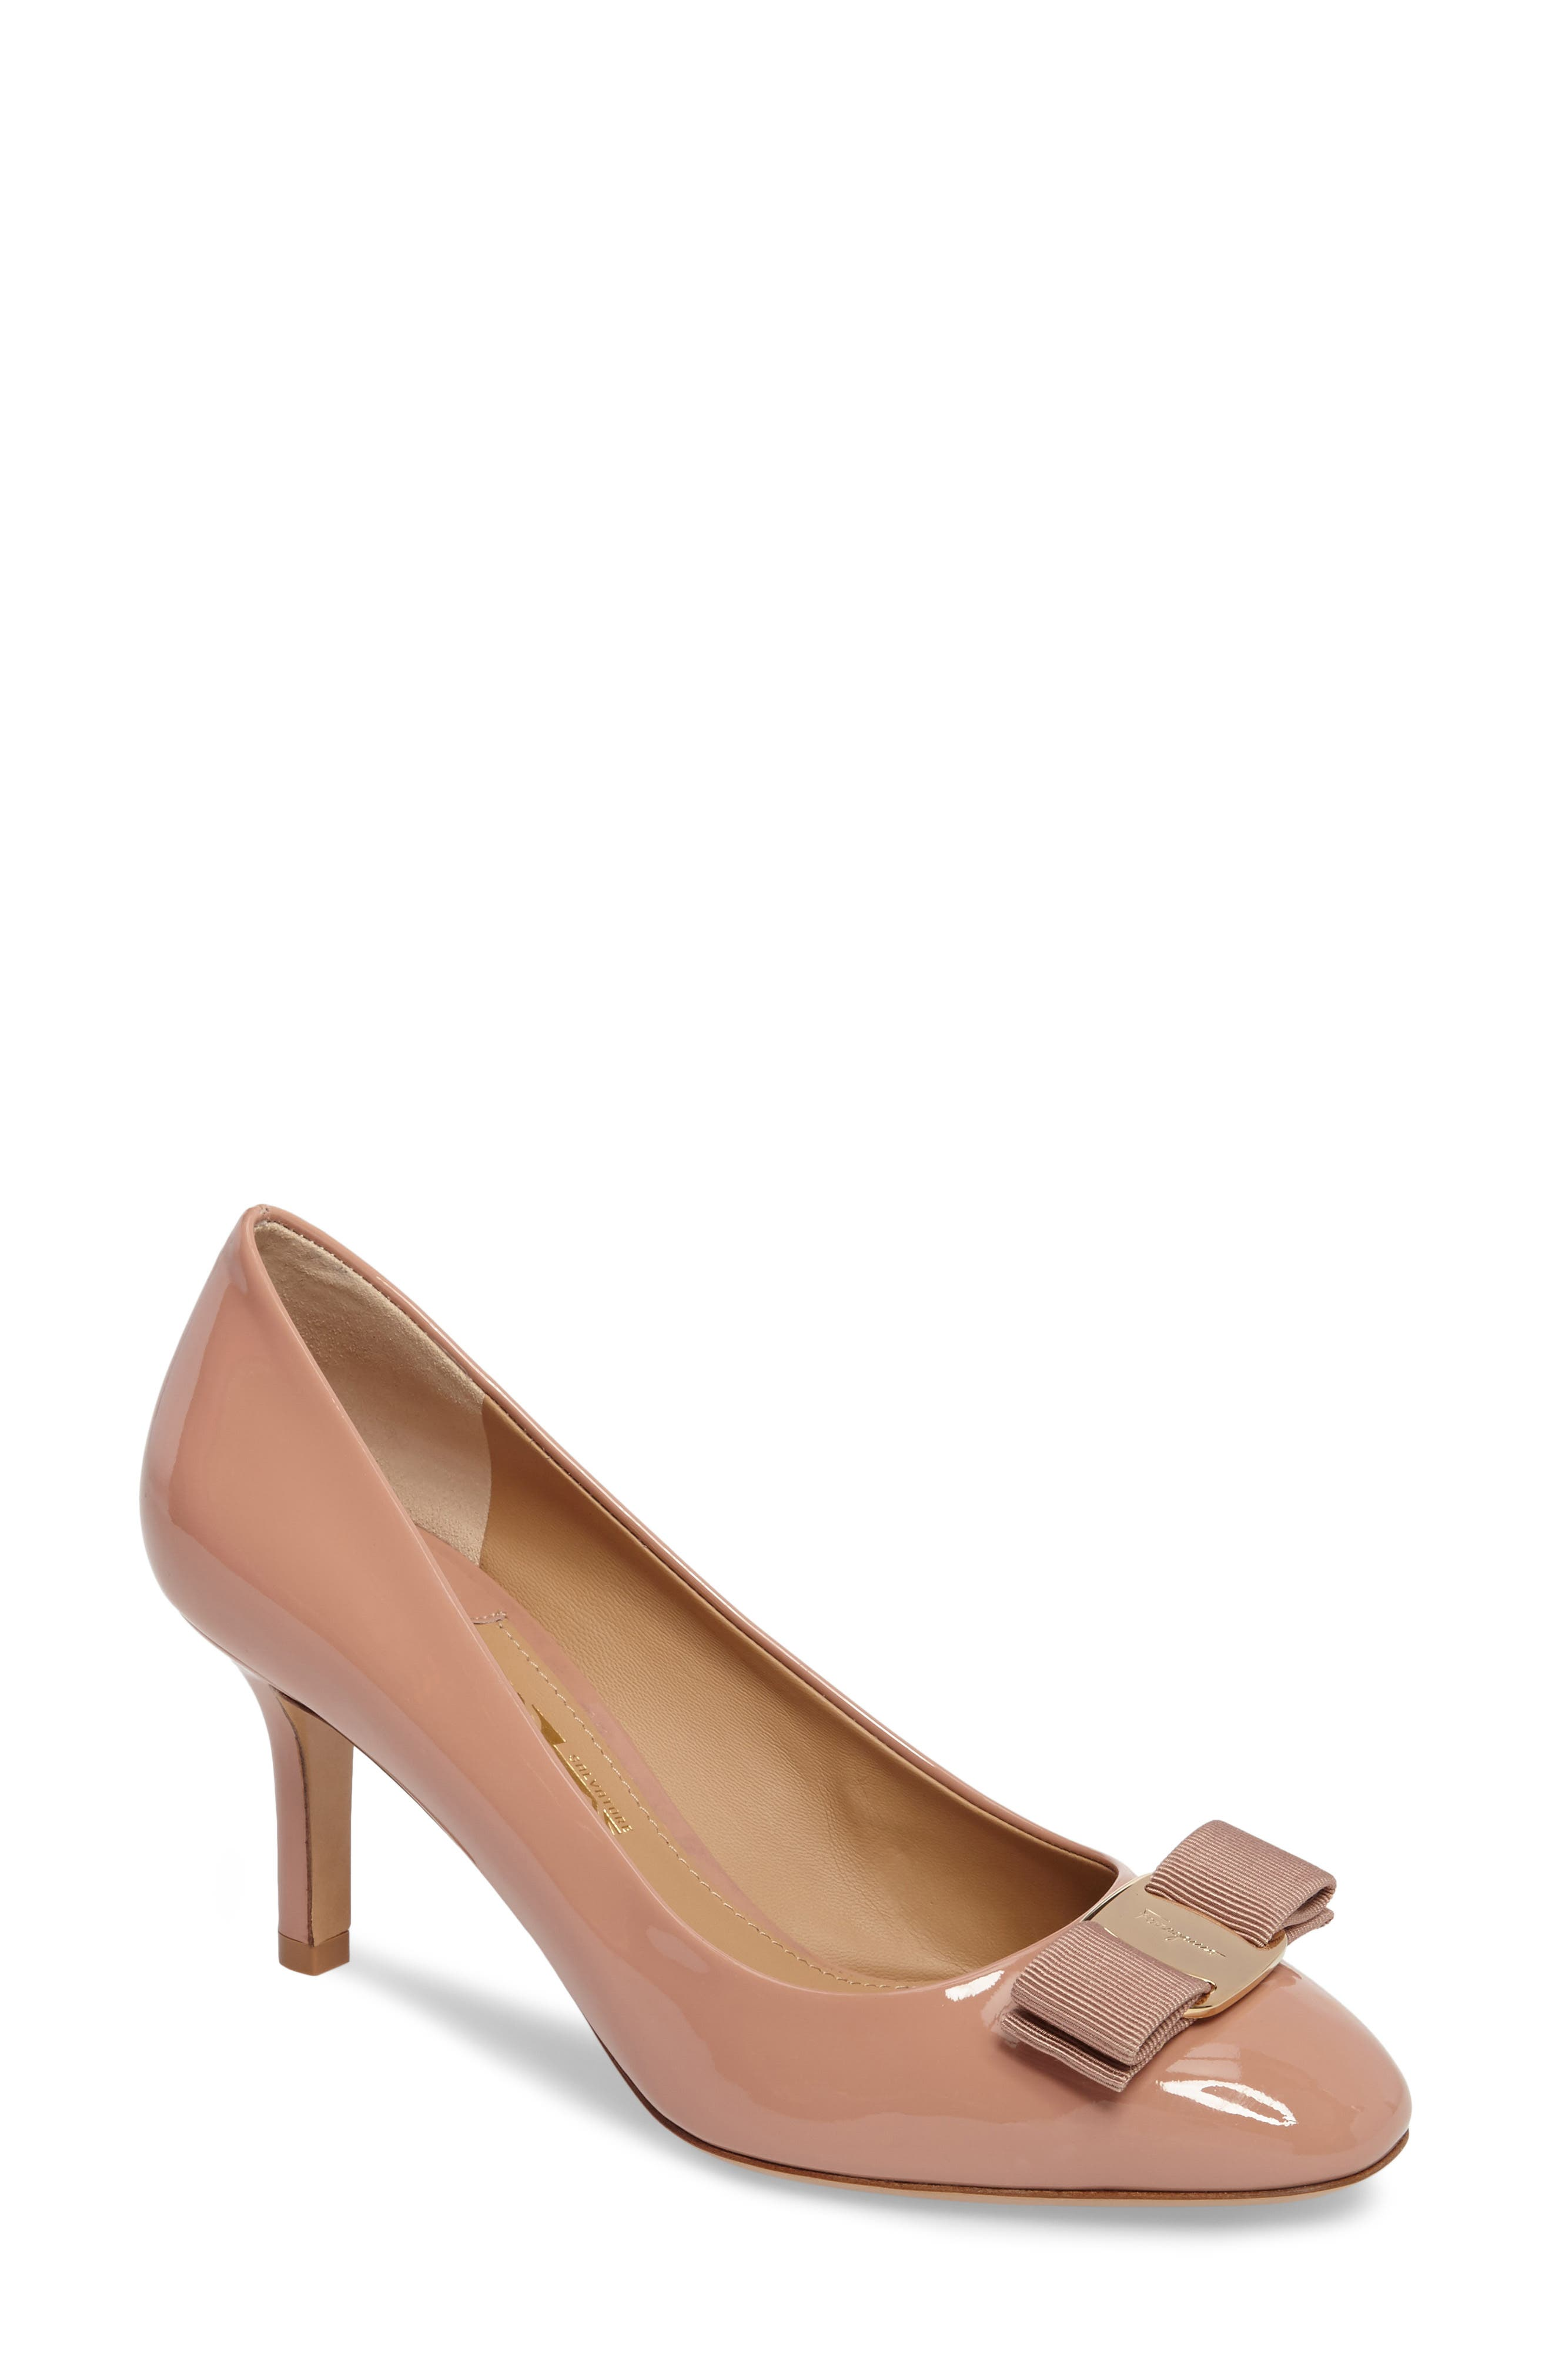 Salvatore Ferragamo Erice Bow Pump (Women)